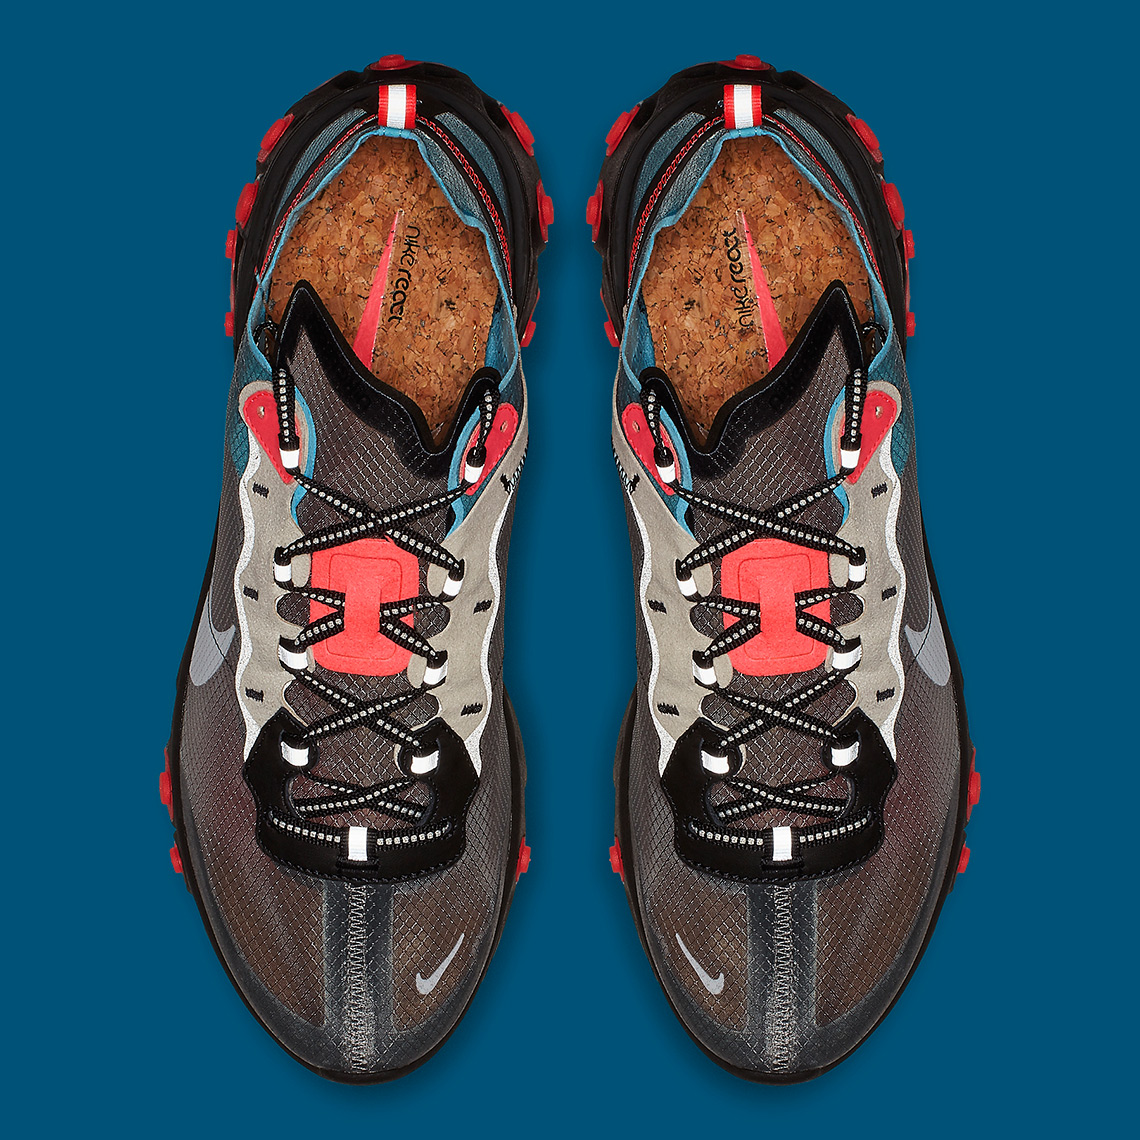 info for 5b1b3 5f6ea Where To Buy Nike React Element 87 Blue Chill Solar Red AQ1090-006 ...